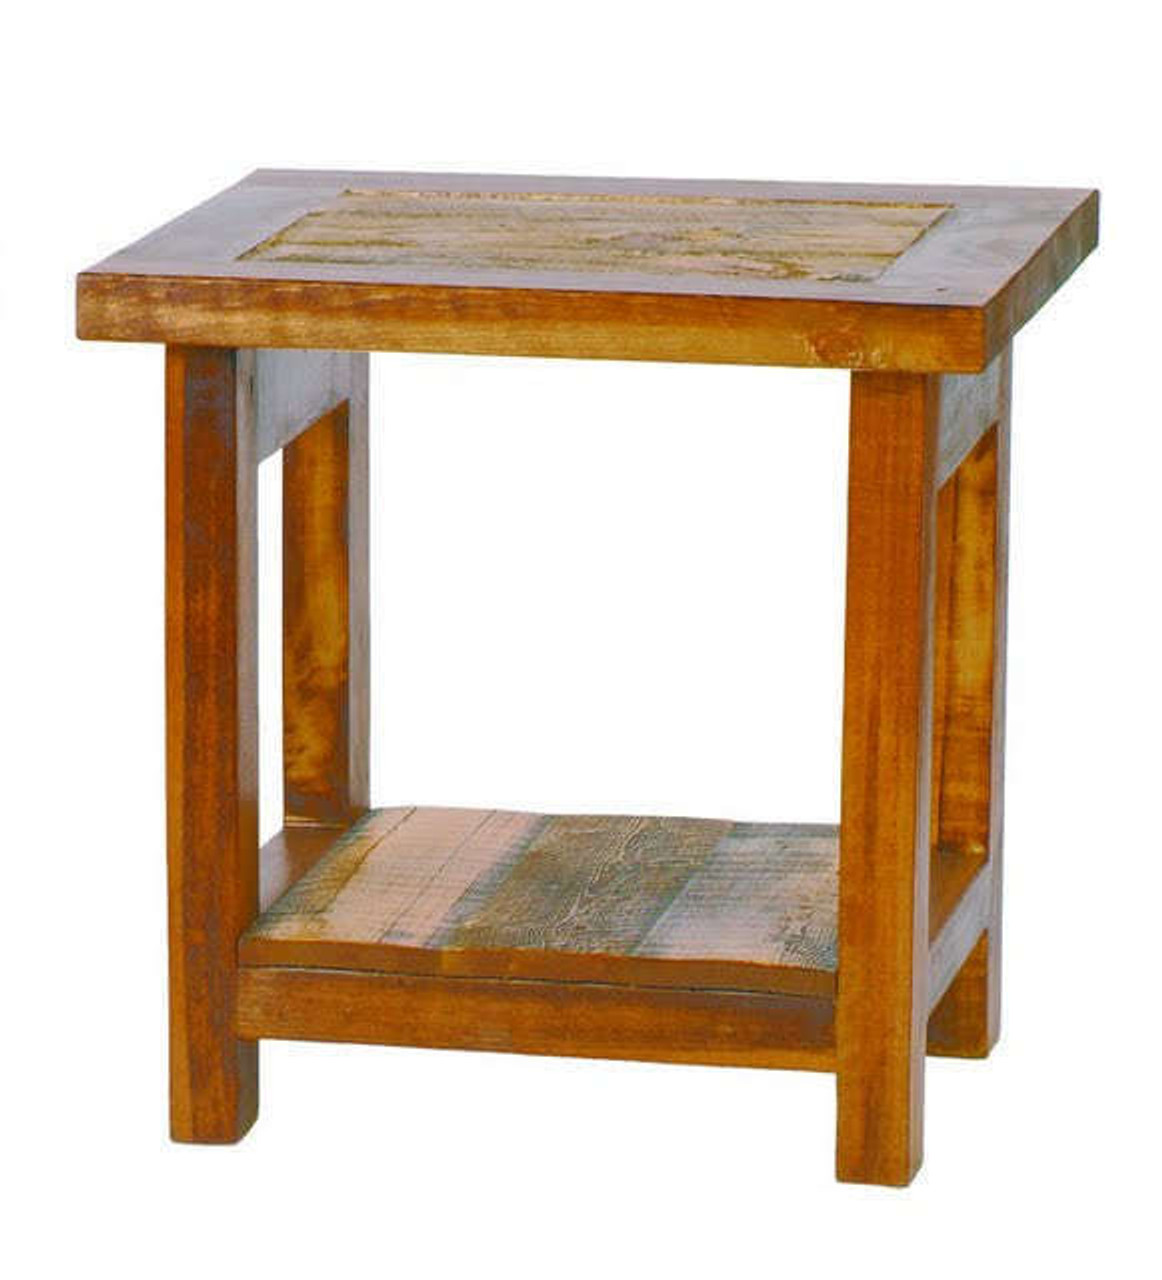 Remarkable Rustic Reclaimed Wood End Table Natural Barnwood Interior Design Ideas Gentotryabchikinfo